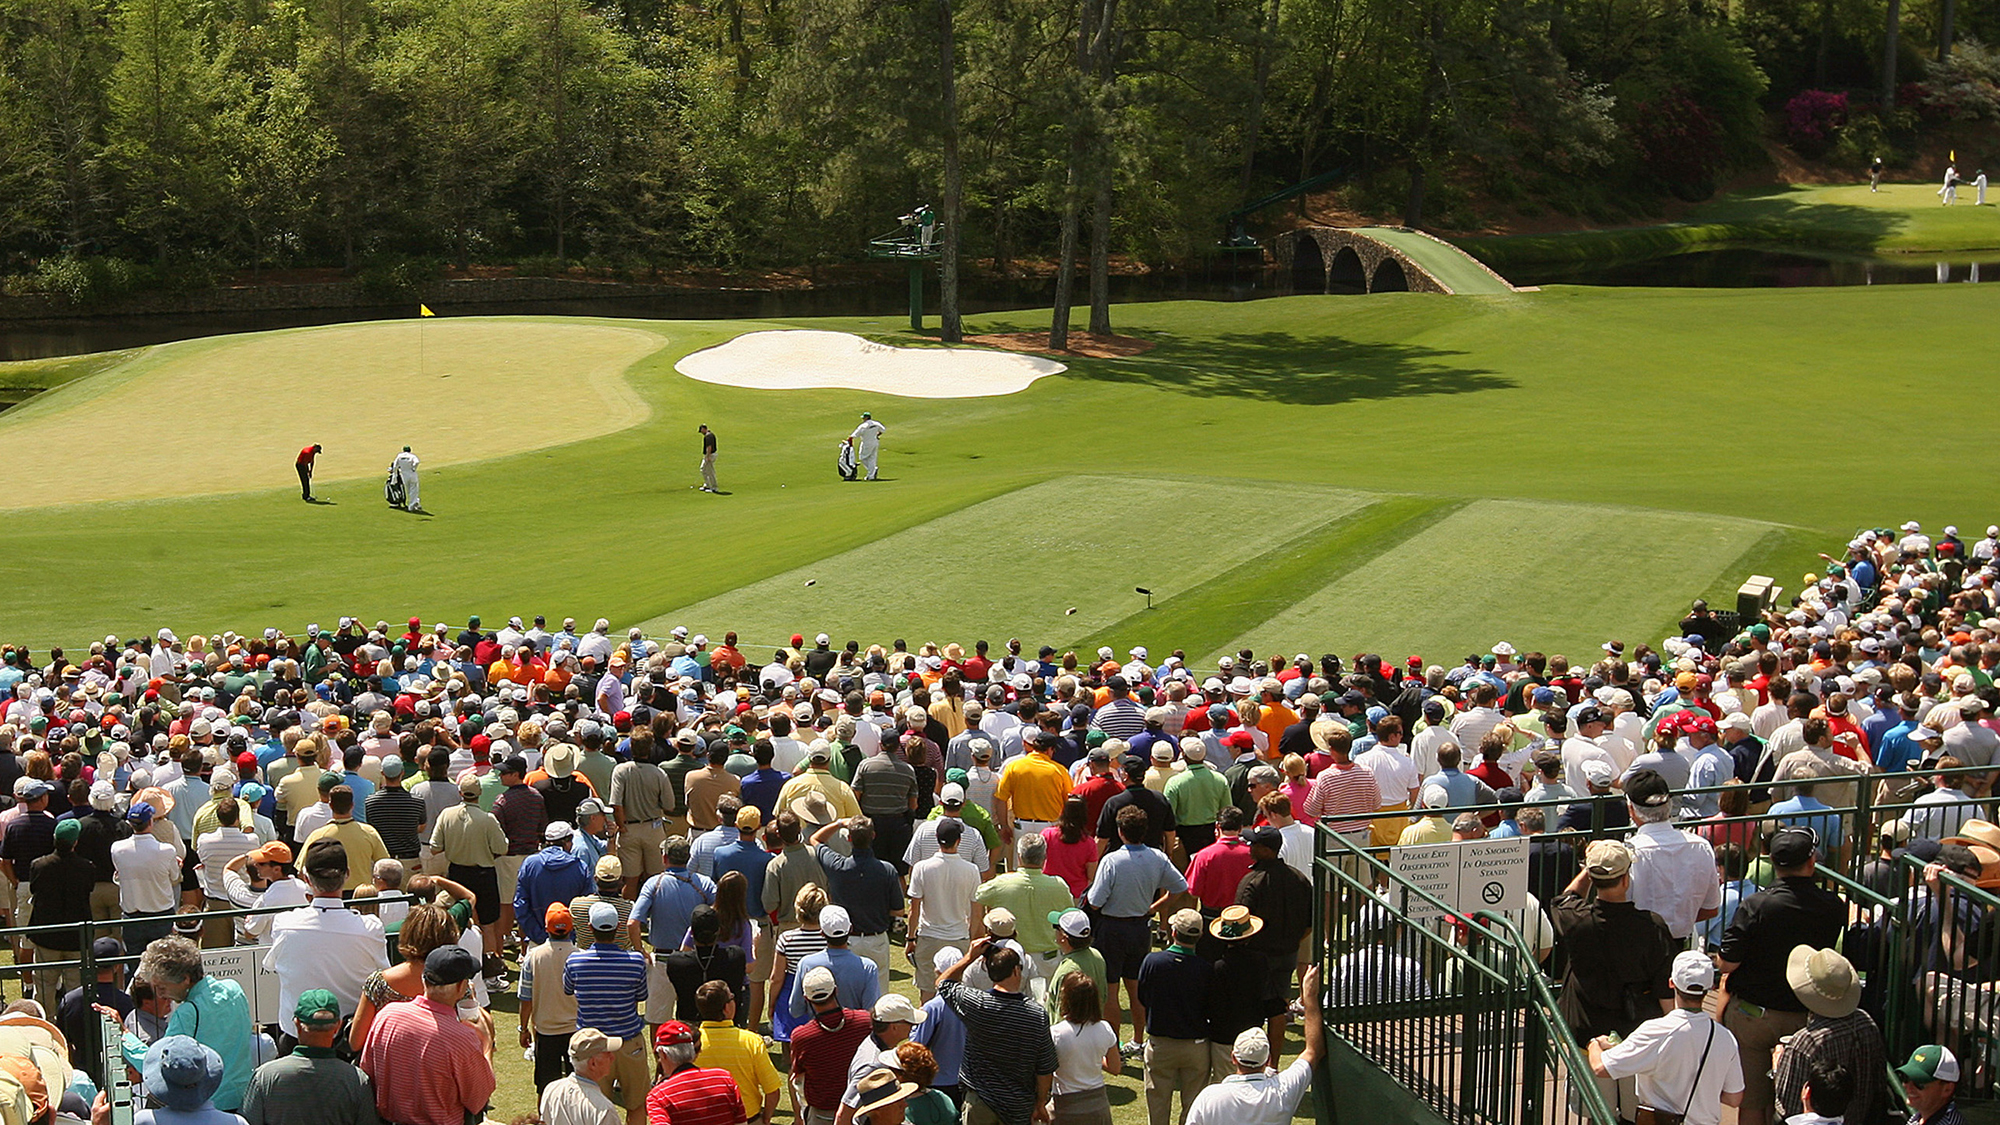 Tim Layden's personal essay from his first visit to Augusta National Golf Club.